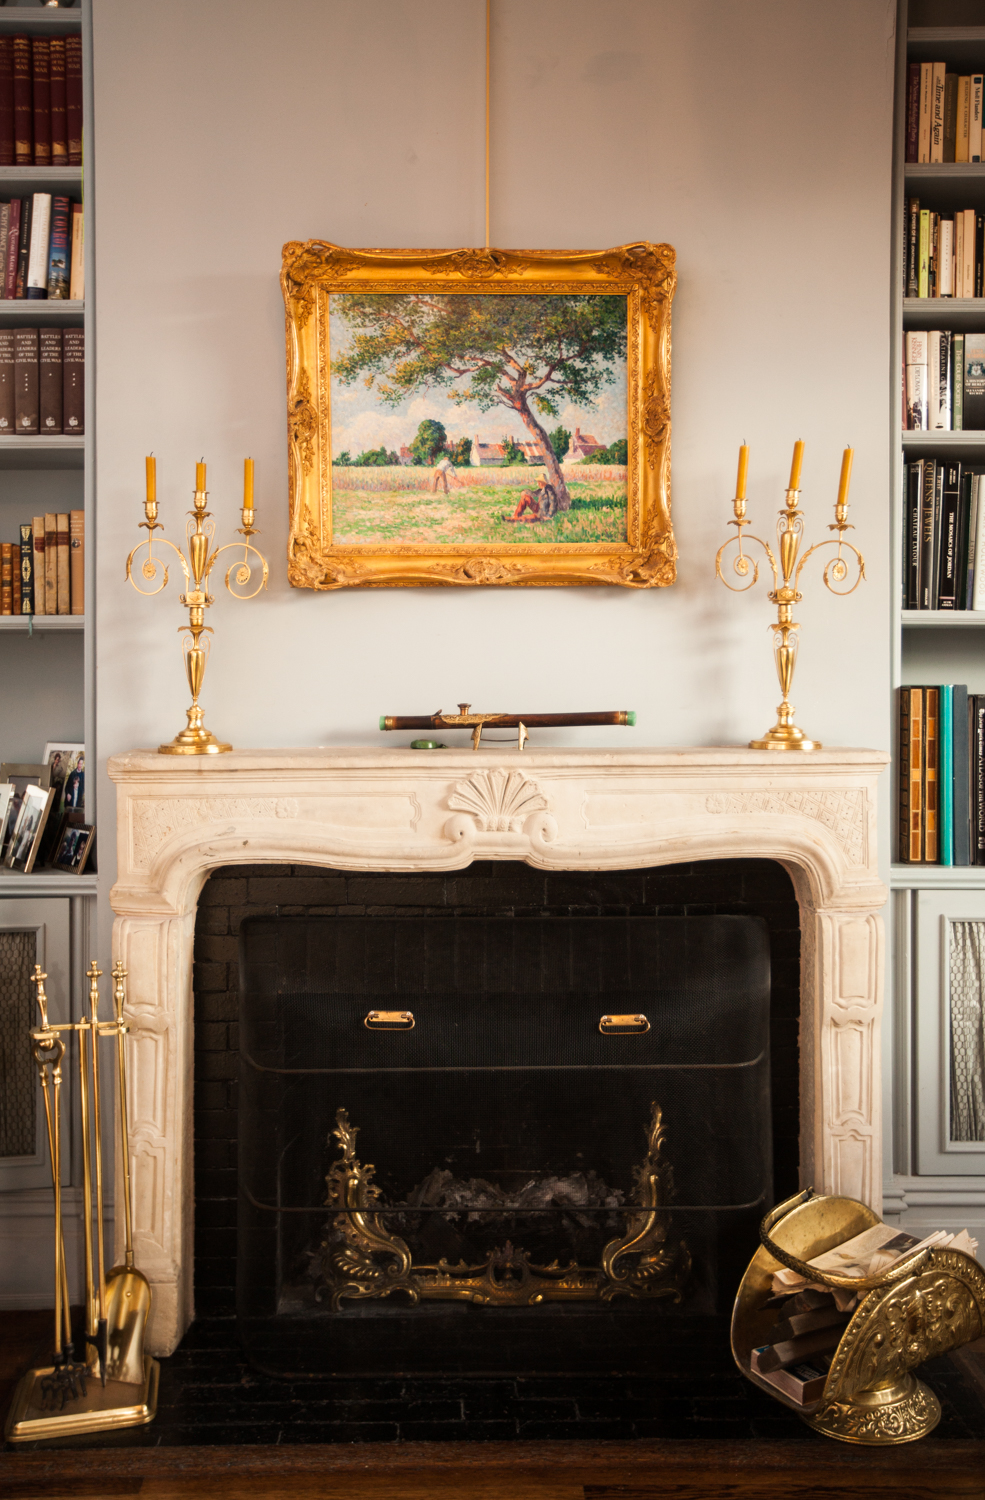 The fireplace (Photo: Getty).